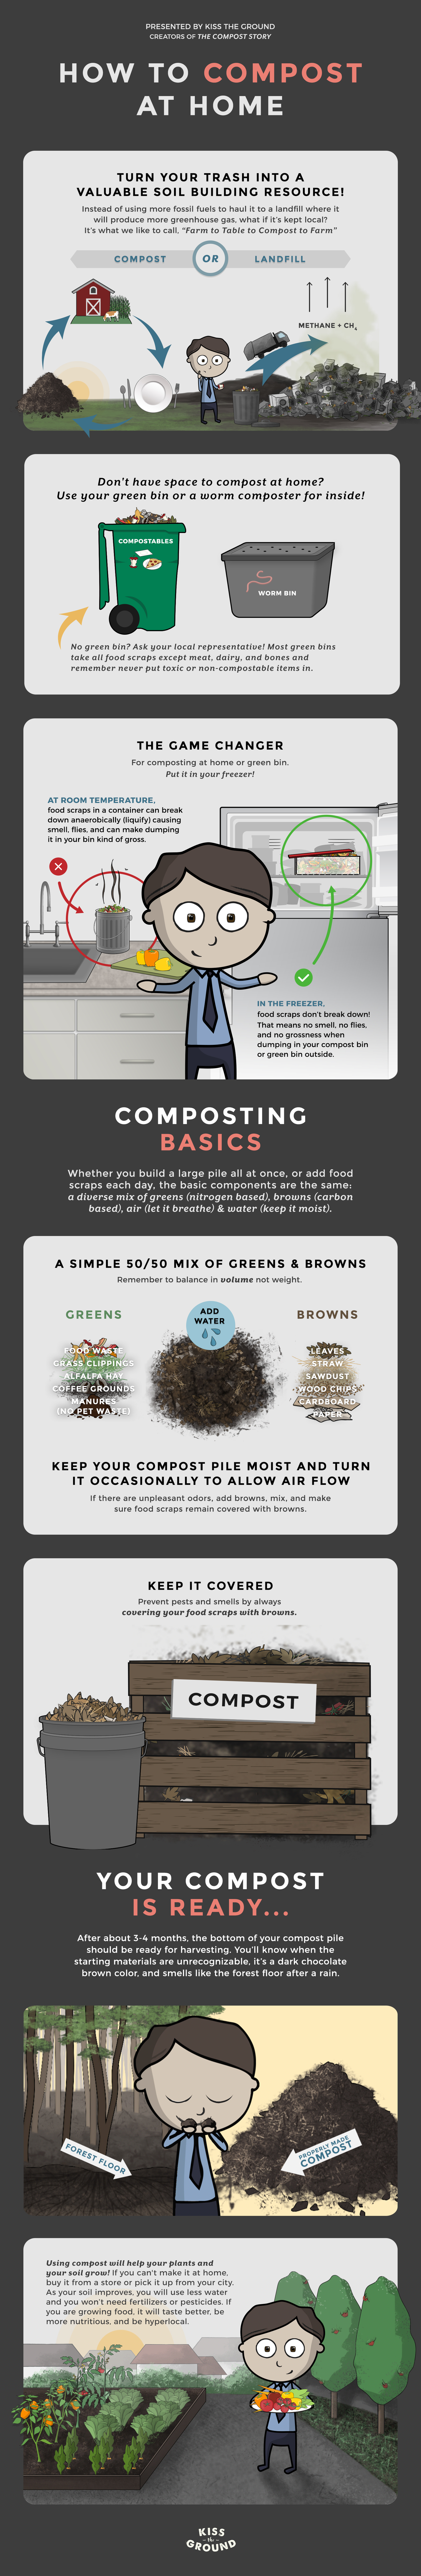 what i u0027ve learned about compost so far